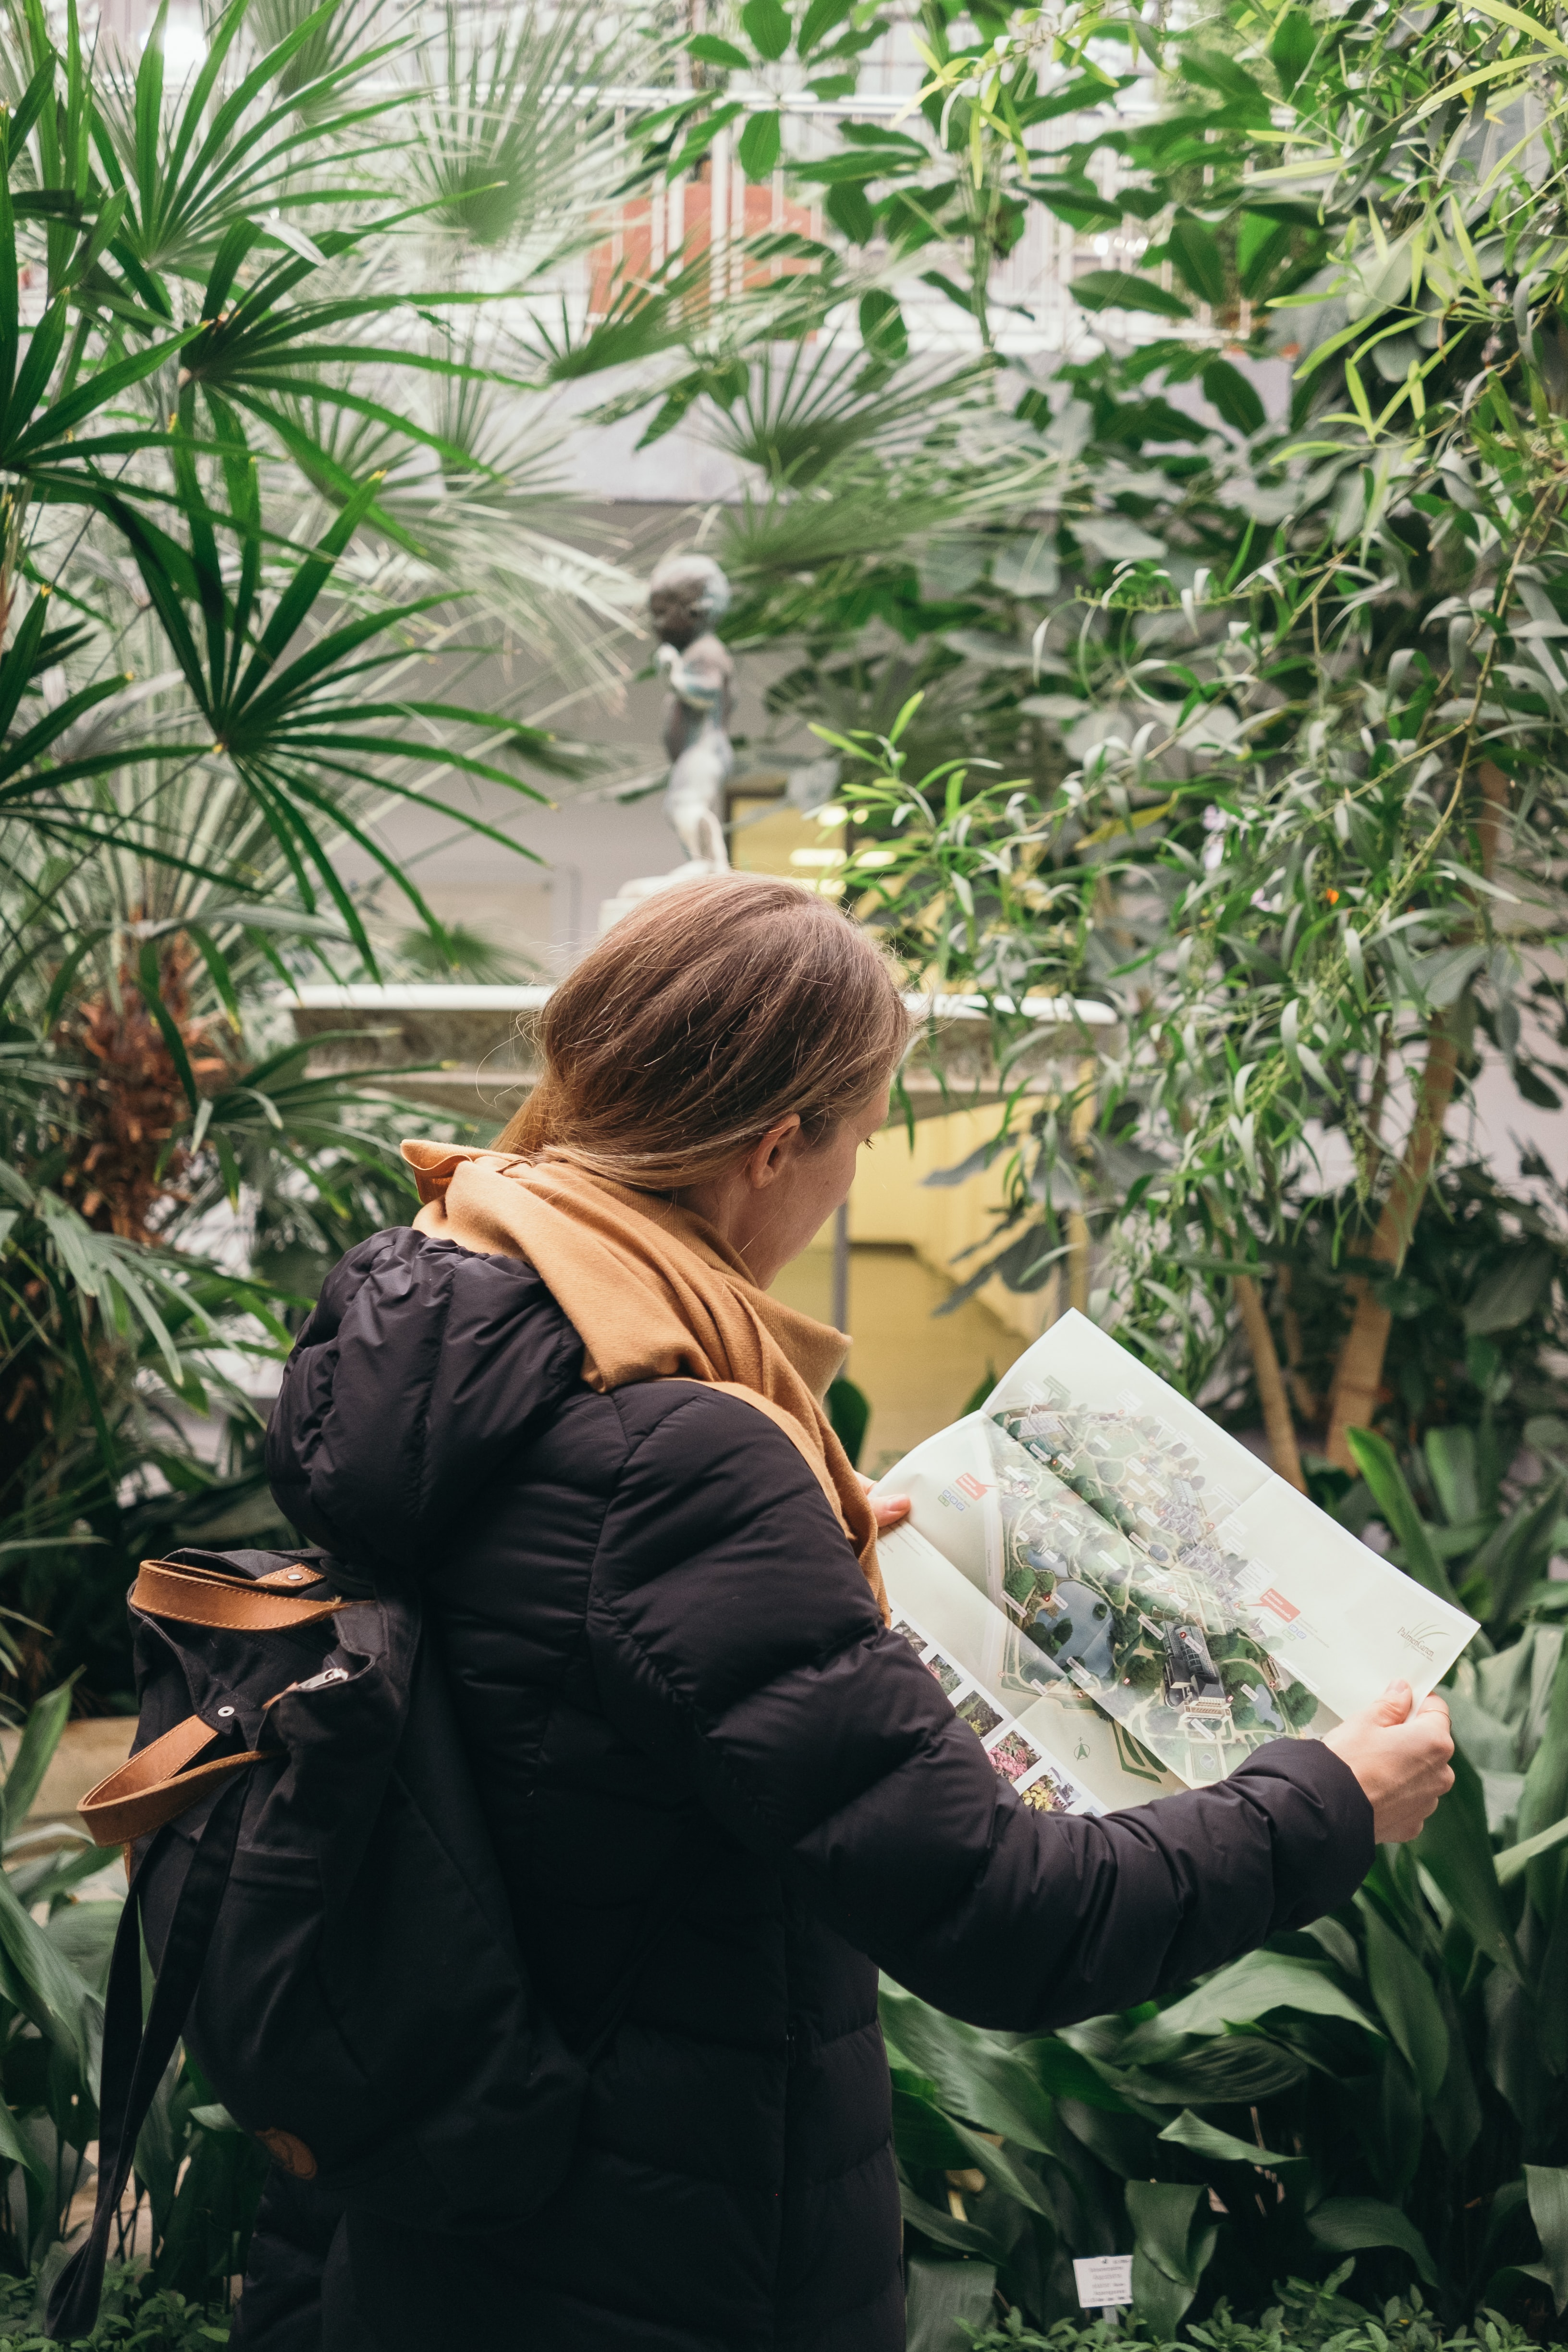 woman in black bubble hoodie holding map and surrounded by plants during daytime